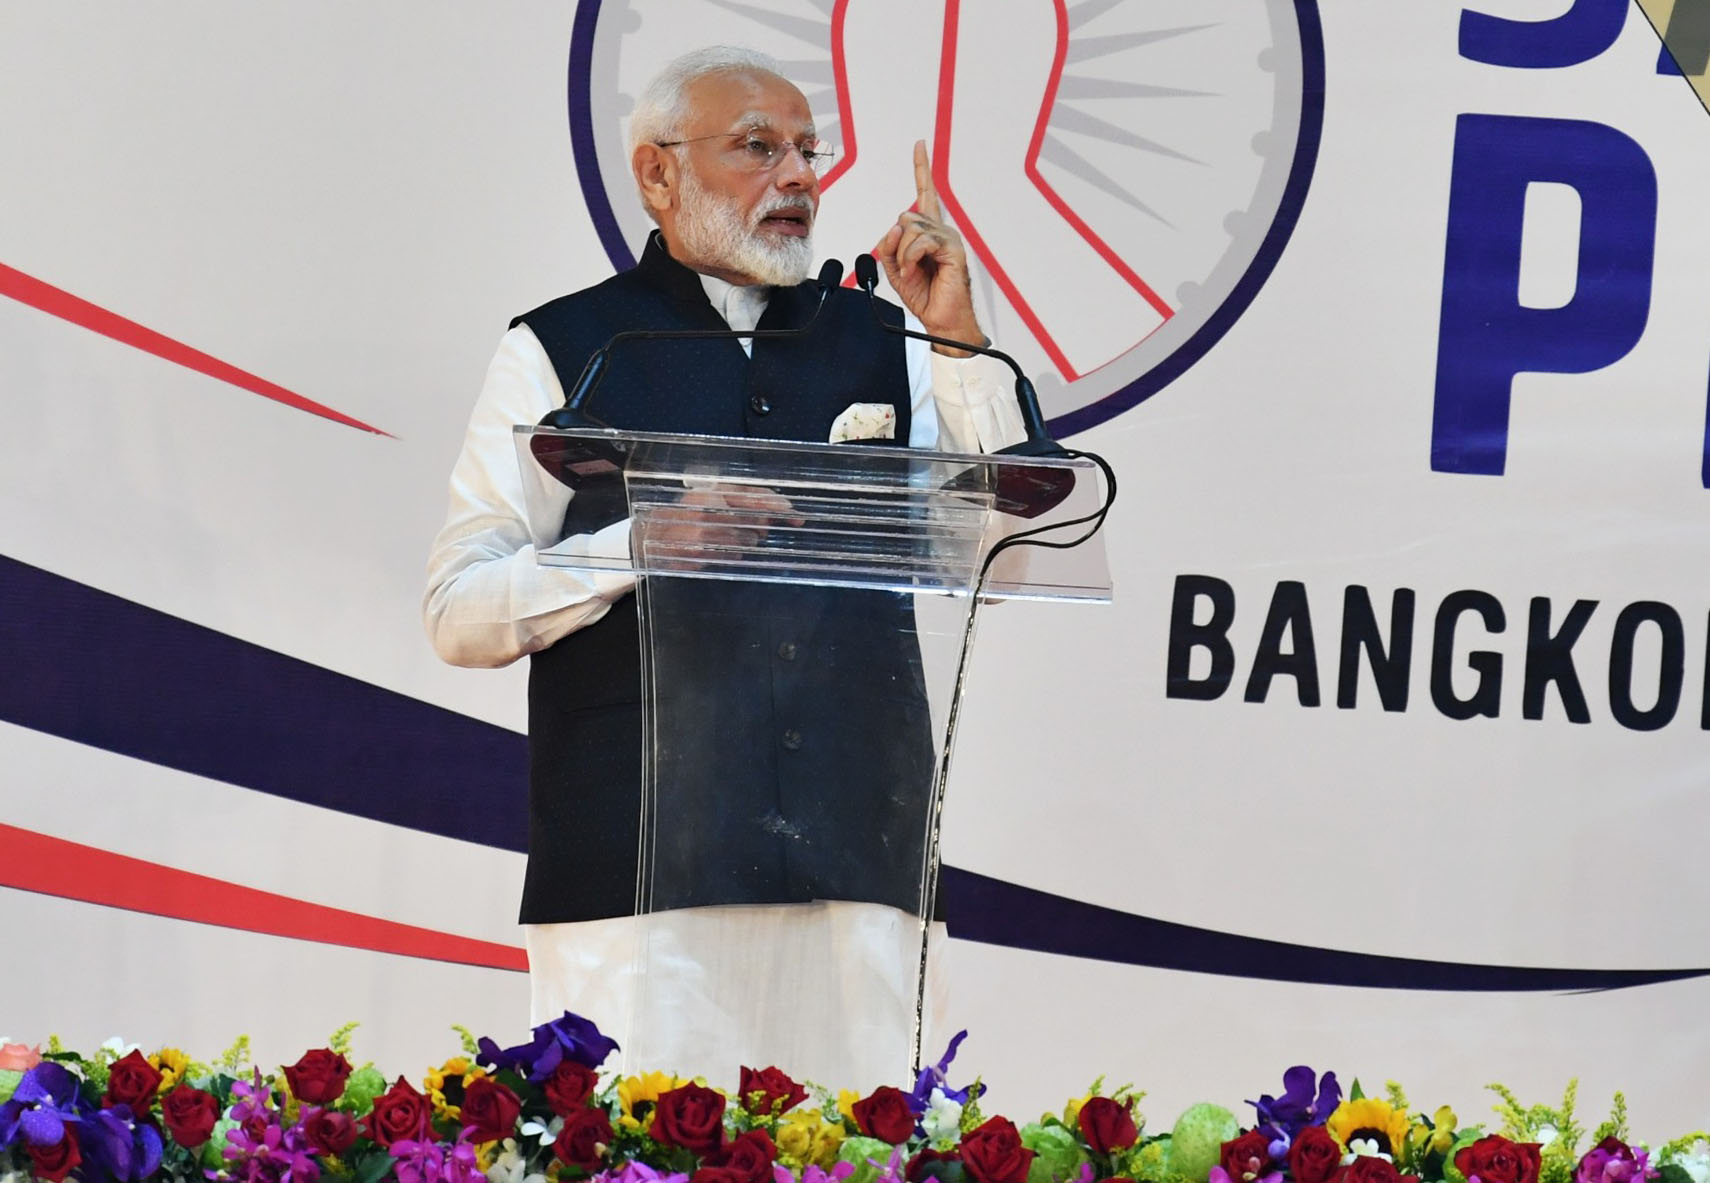 PM addresses 'Sawasdee PM Modi' community event in Bangkok